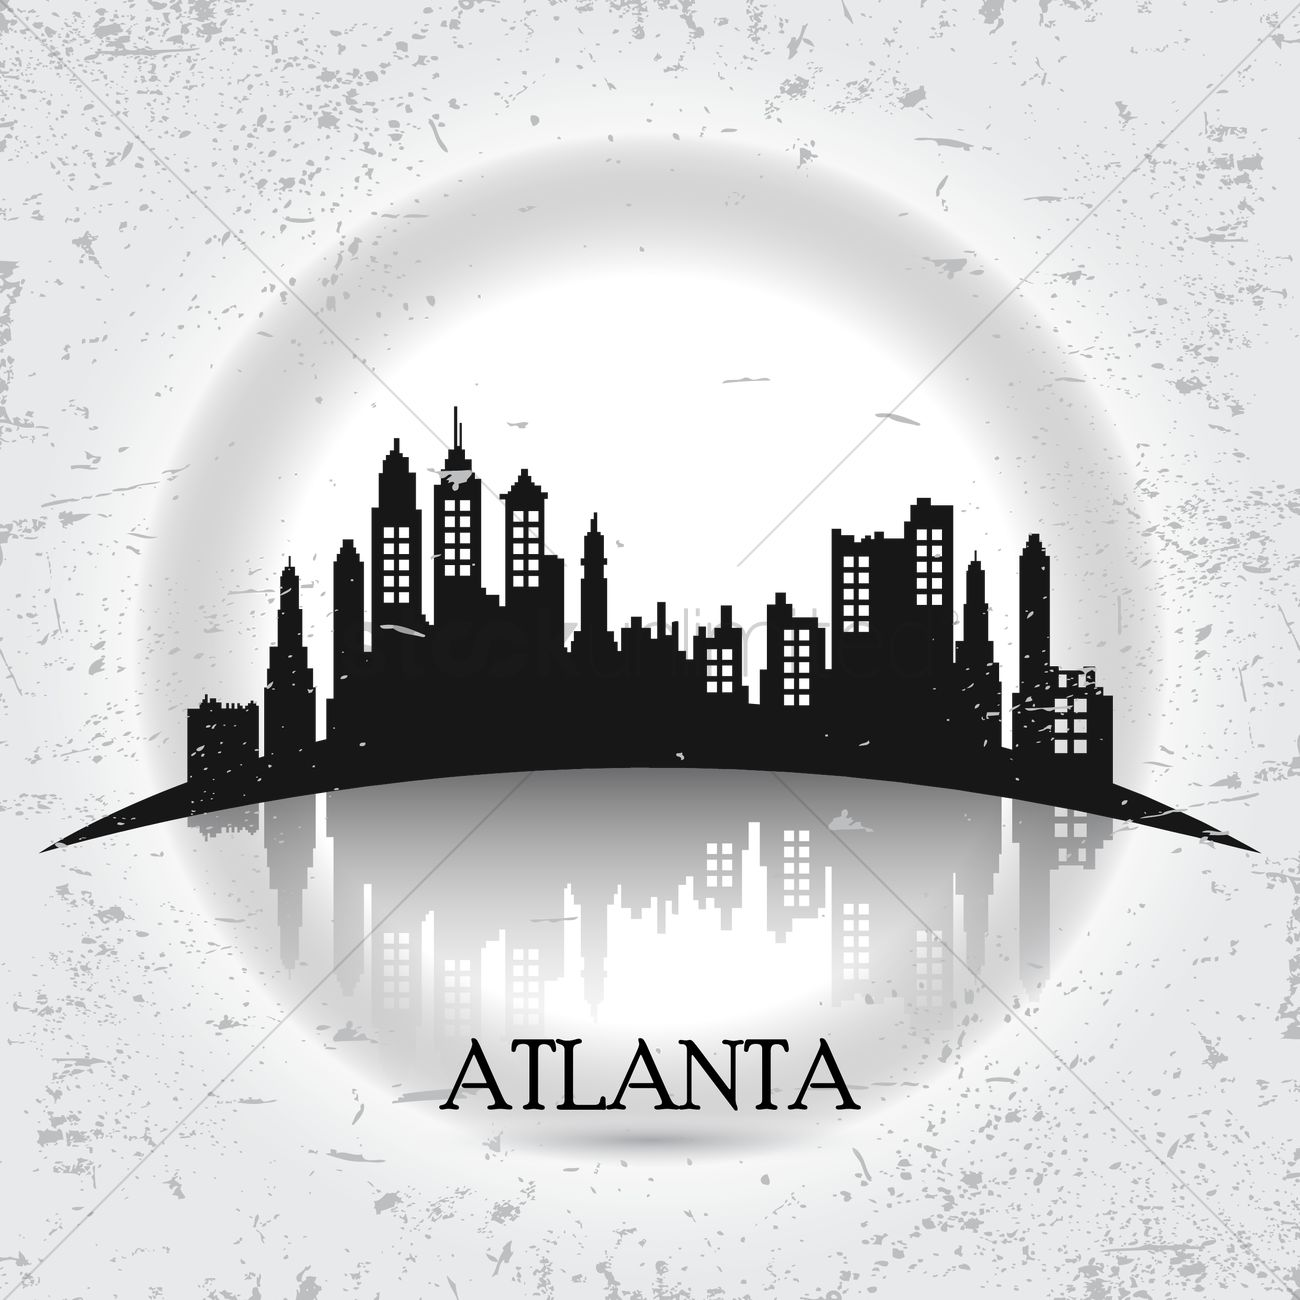 1300x1300 Atlanta Vector Image